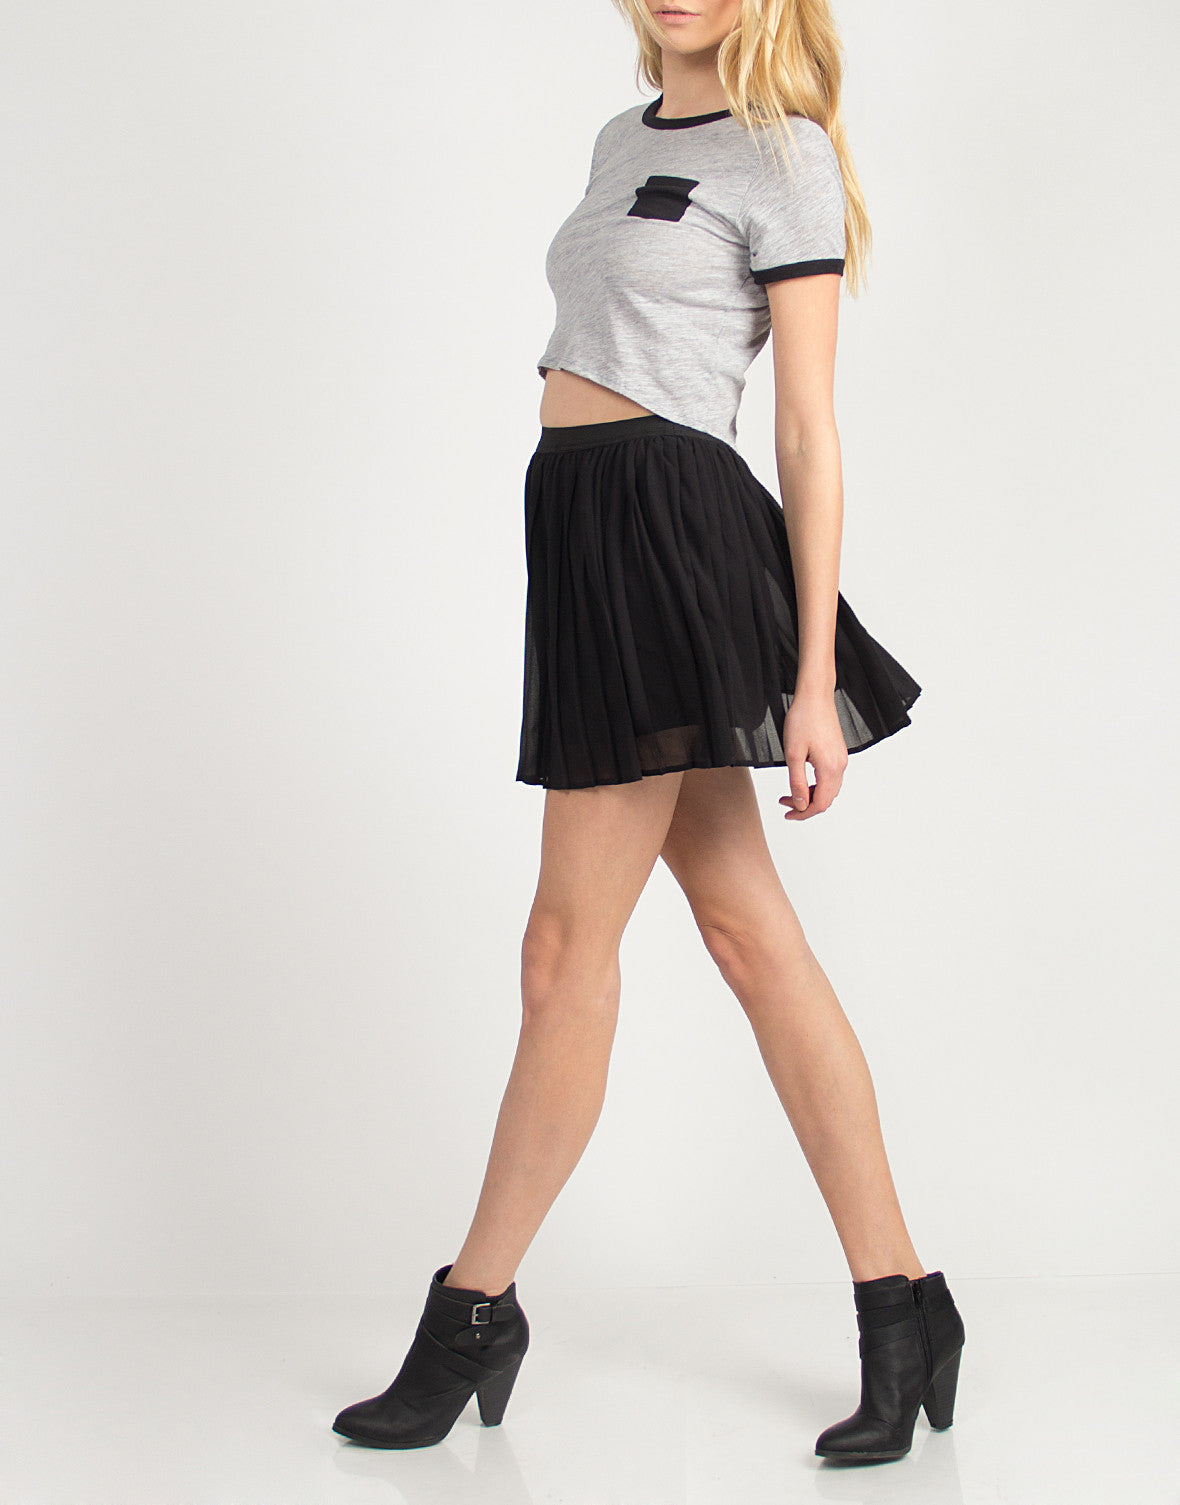 Contrast Pocket Cropped Tee - Black - Large